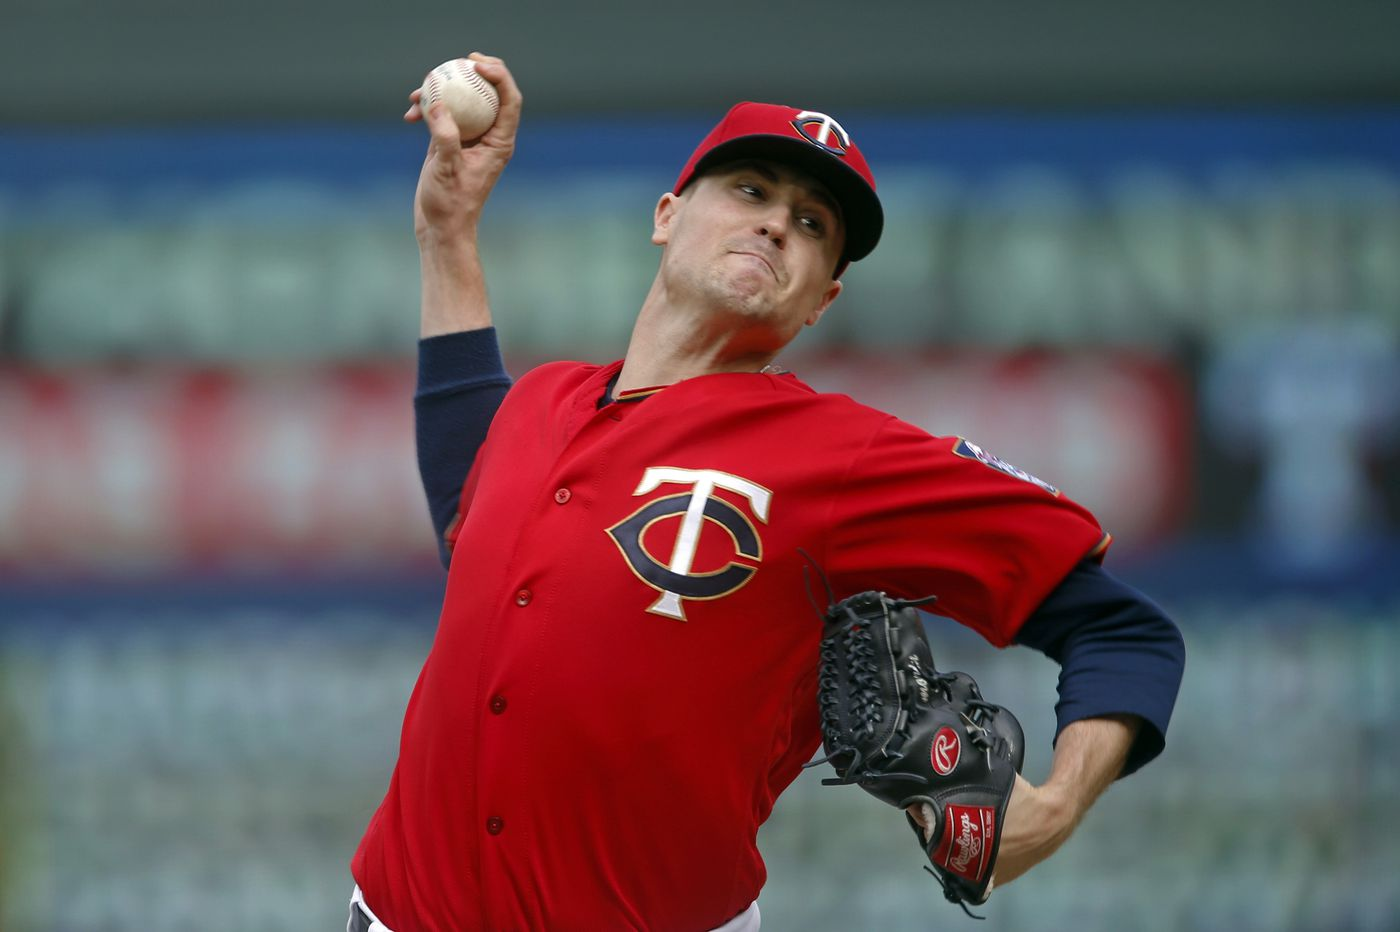 Phillies trade for reliever Mike Morin from Twins